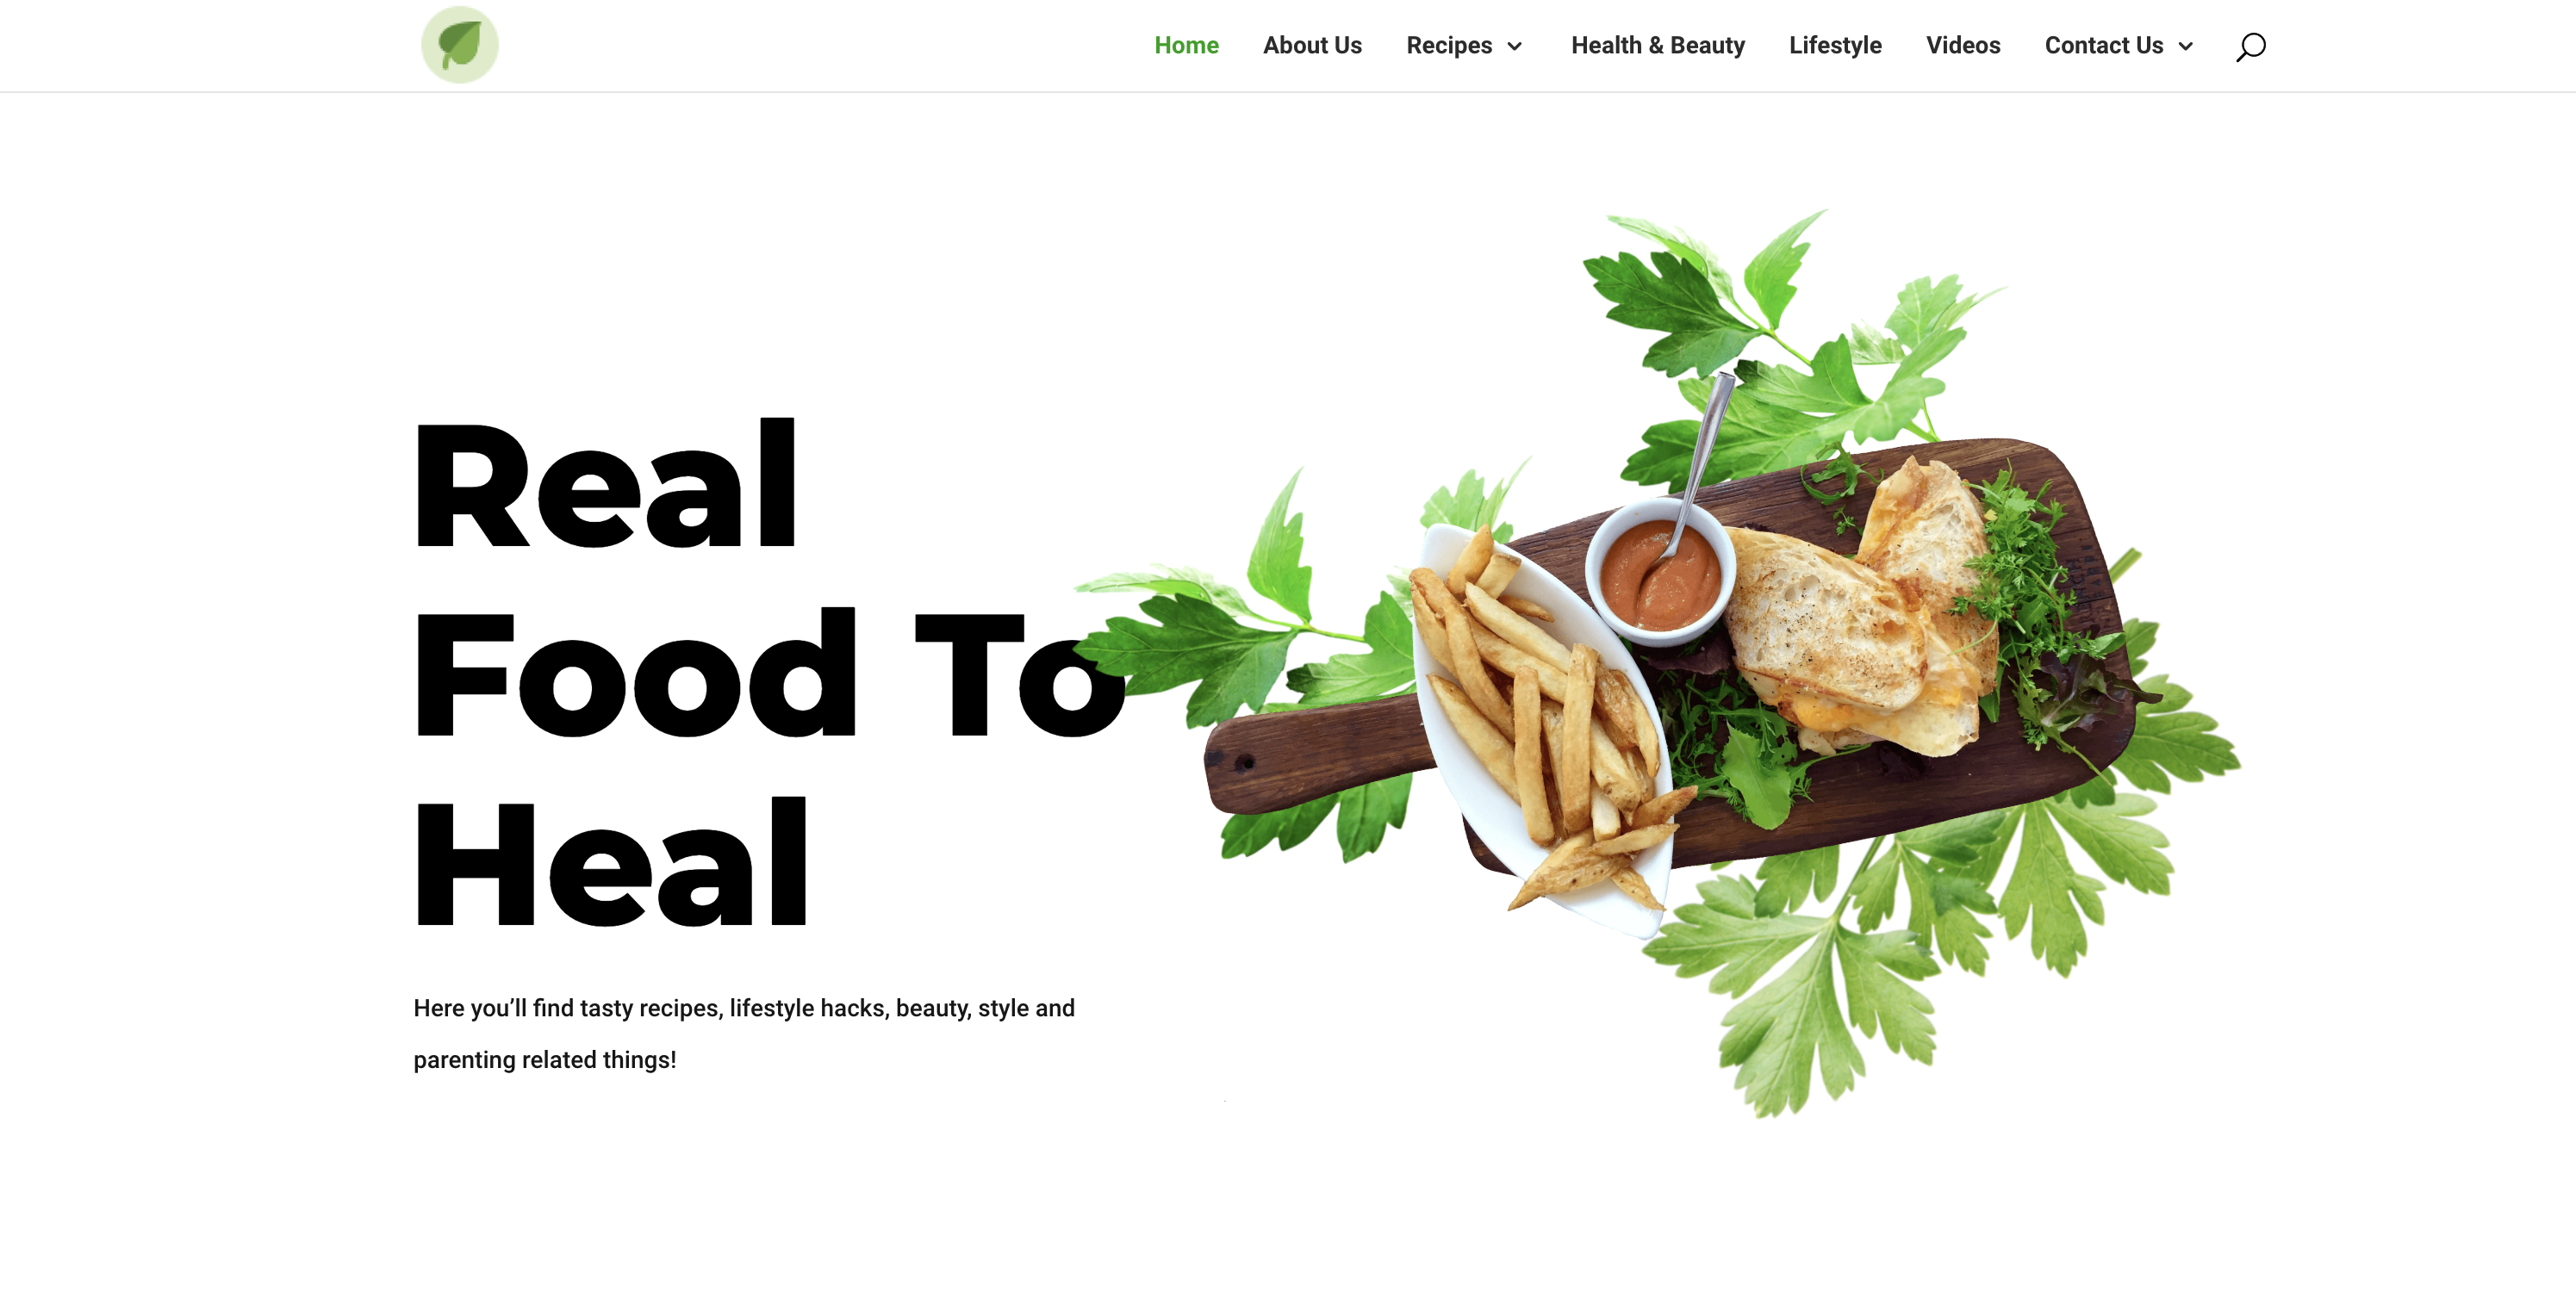 real food to heal - roy wakumelo